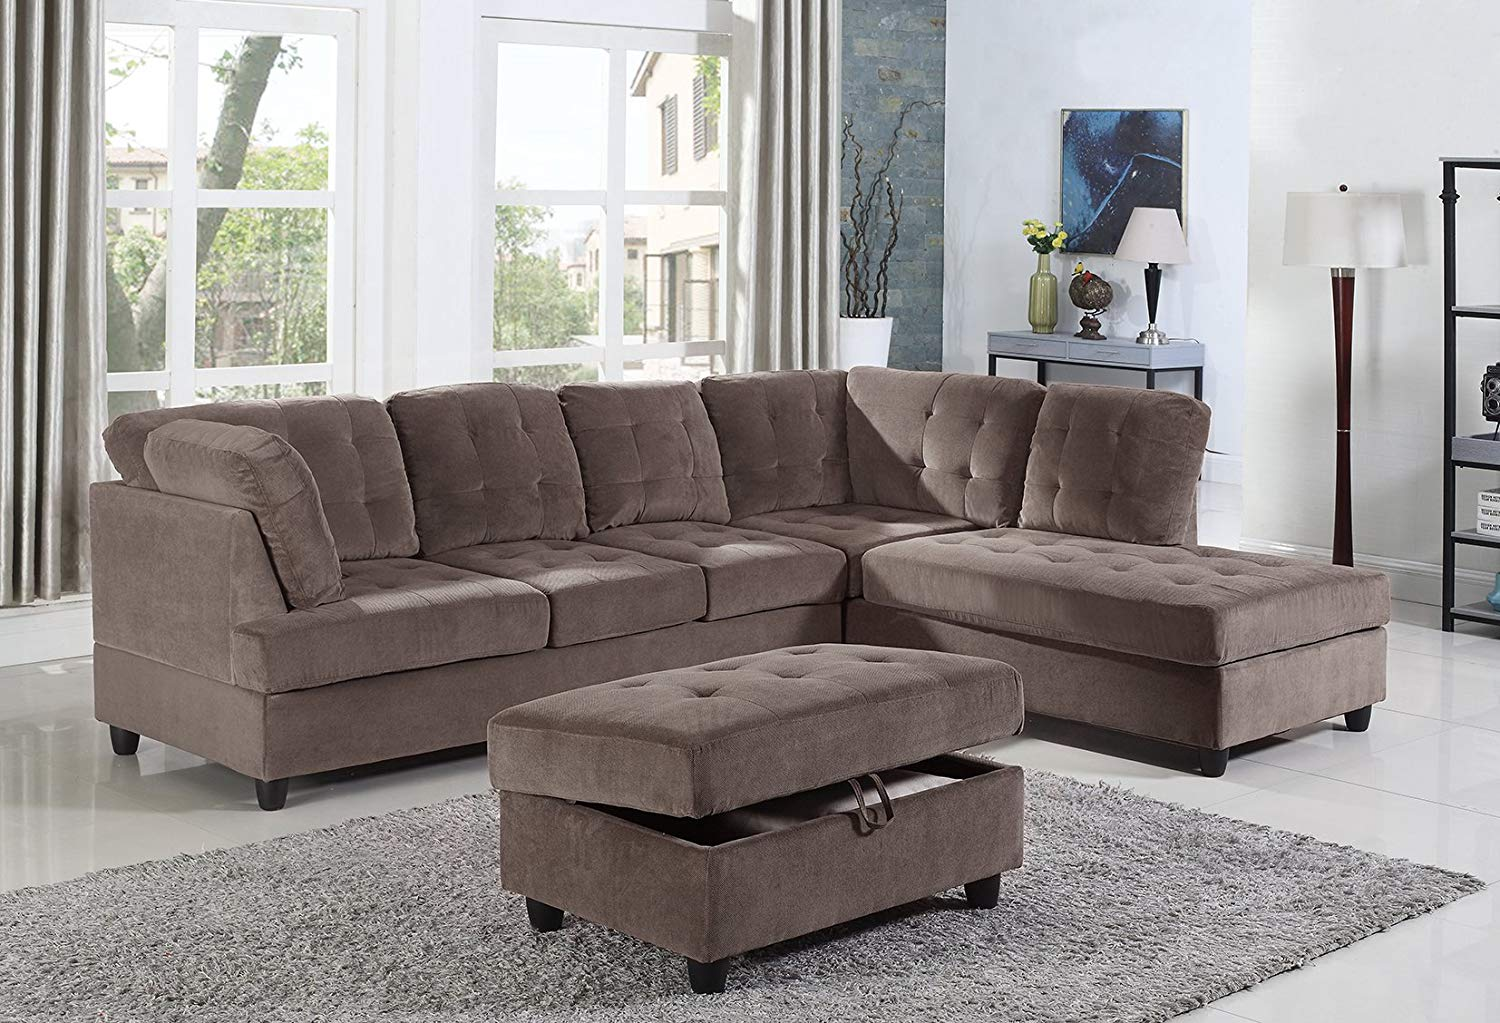 Right Facing Sectional Sofa Marvelous Interior Images Of Homes